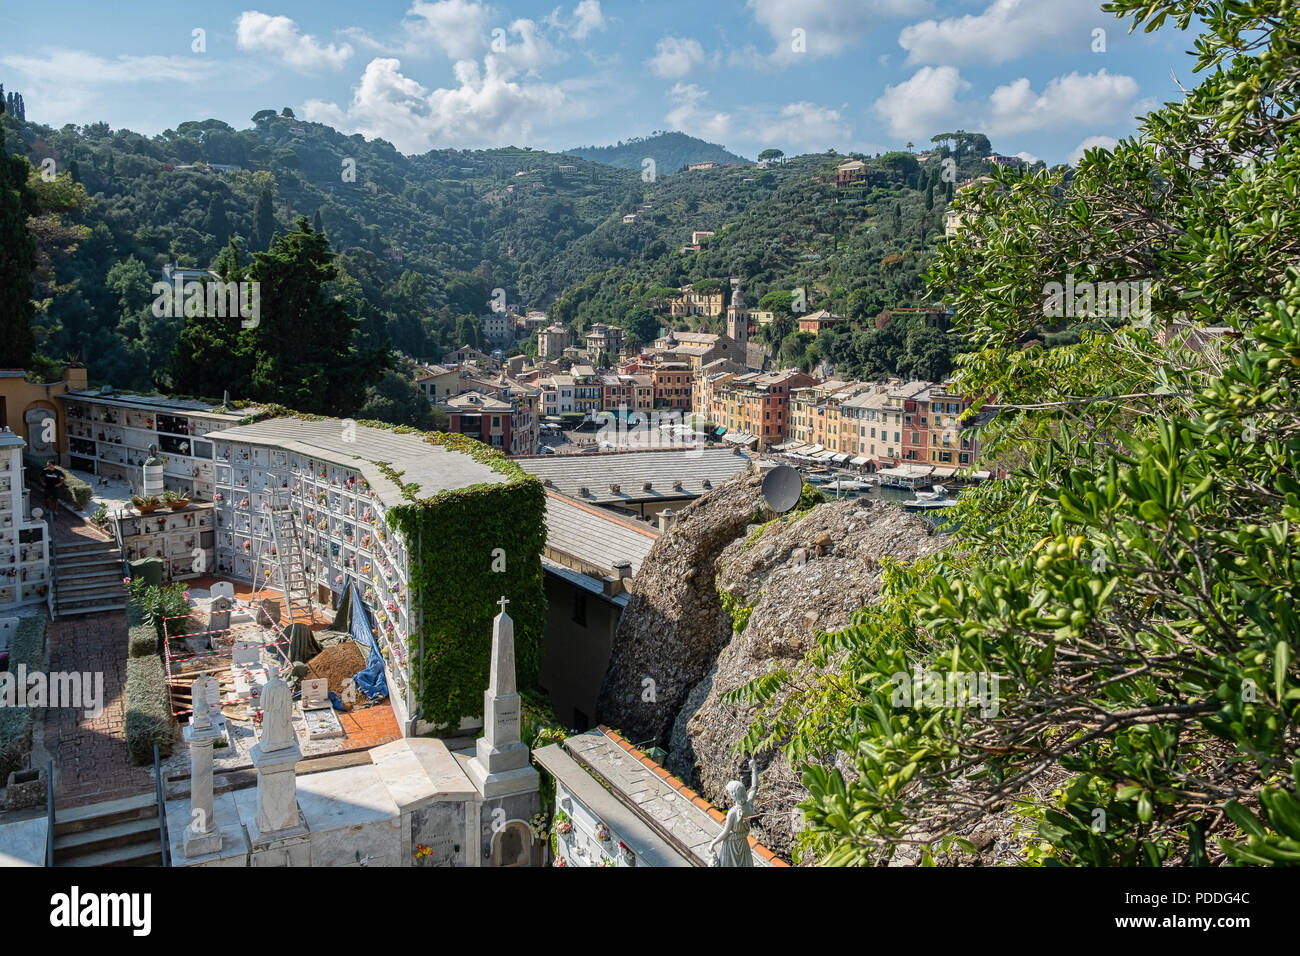 GENOA, ITALY - August 08, 2018:  The suggestive cemetery of Portofino, is located on the Portofino mountain and is very famous because many entreprene - Stock Image